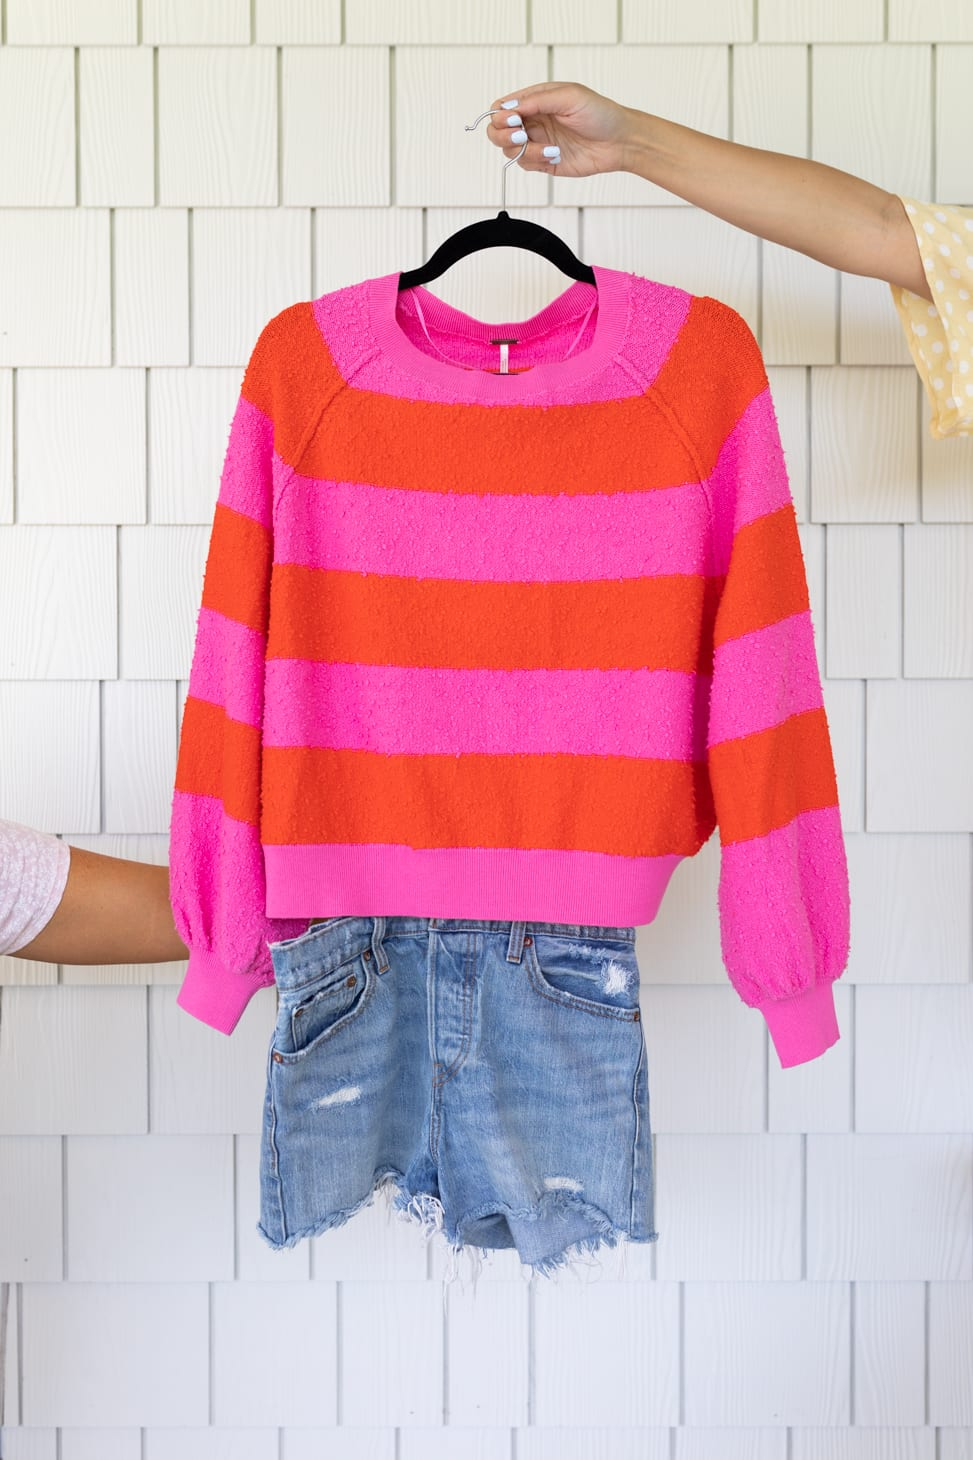 Jillian Harris' New Favourite Denim Shorts shown paired with with a light sweater with pink and red horizontal stripes.